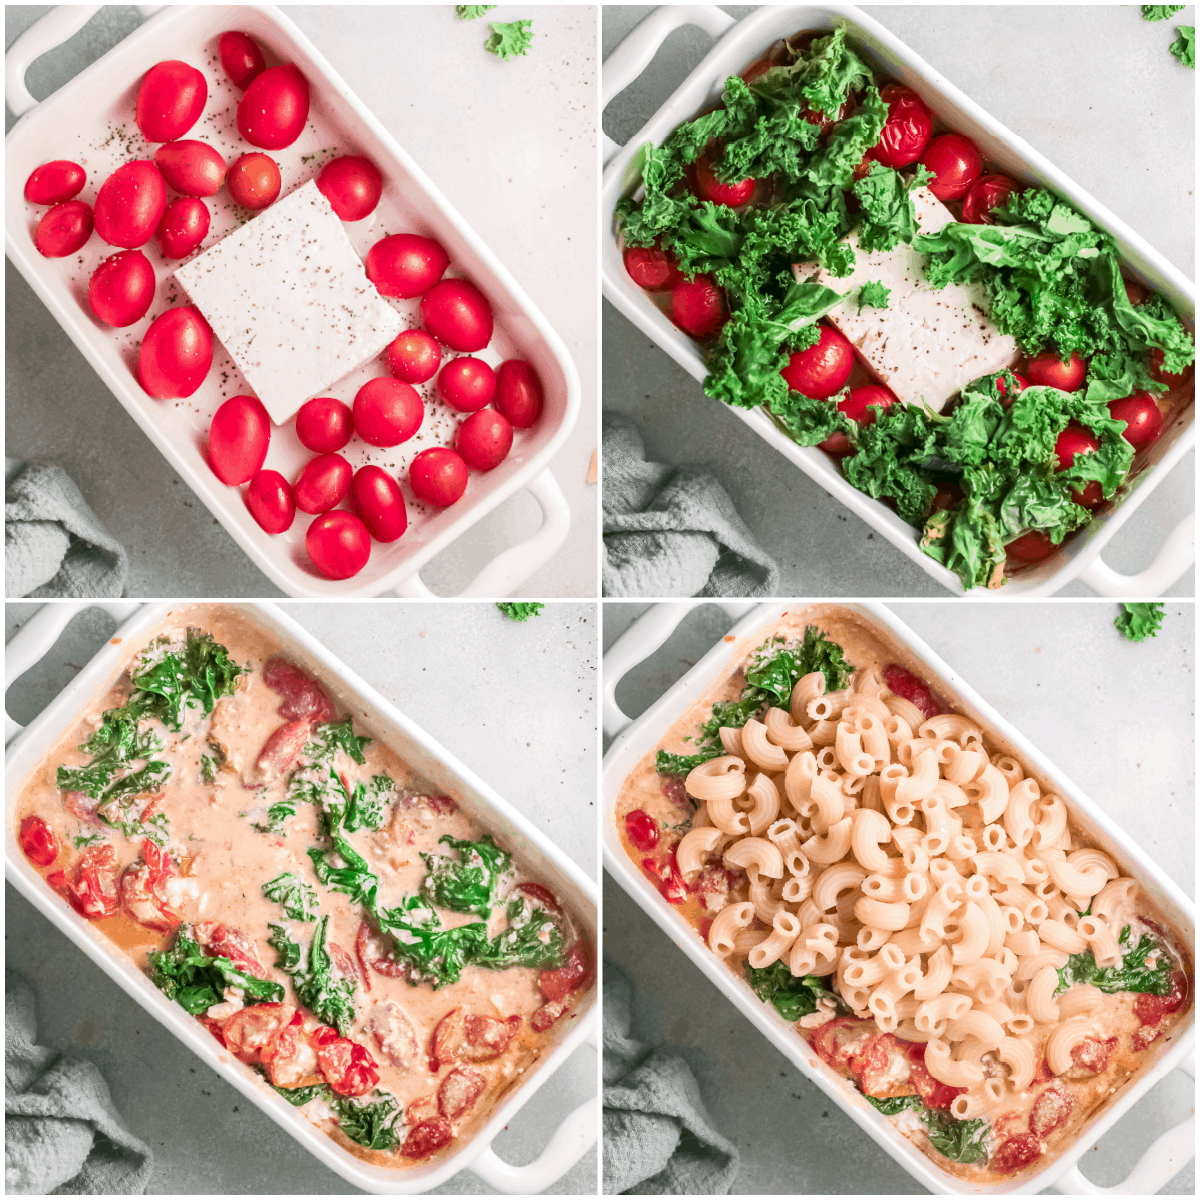 image collage showing the steps for making baked feta pasta